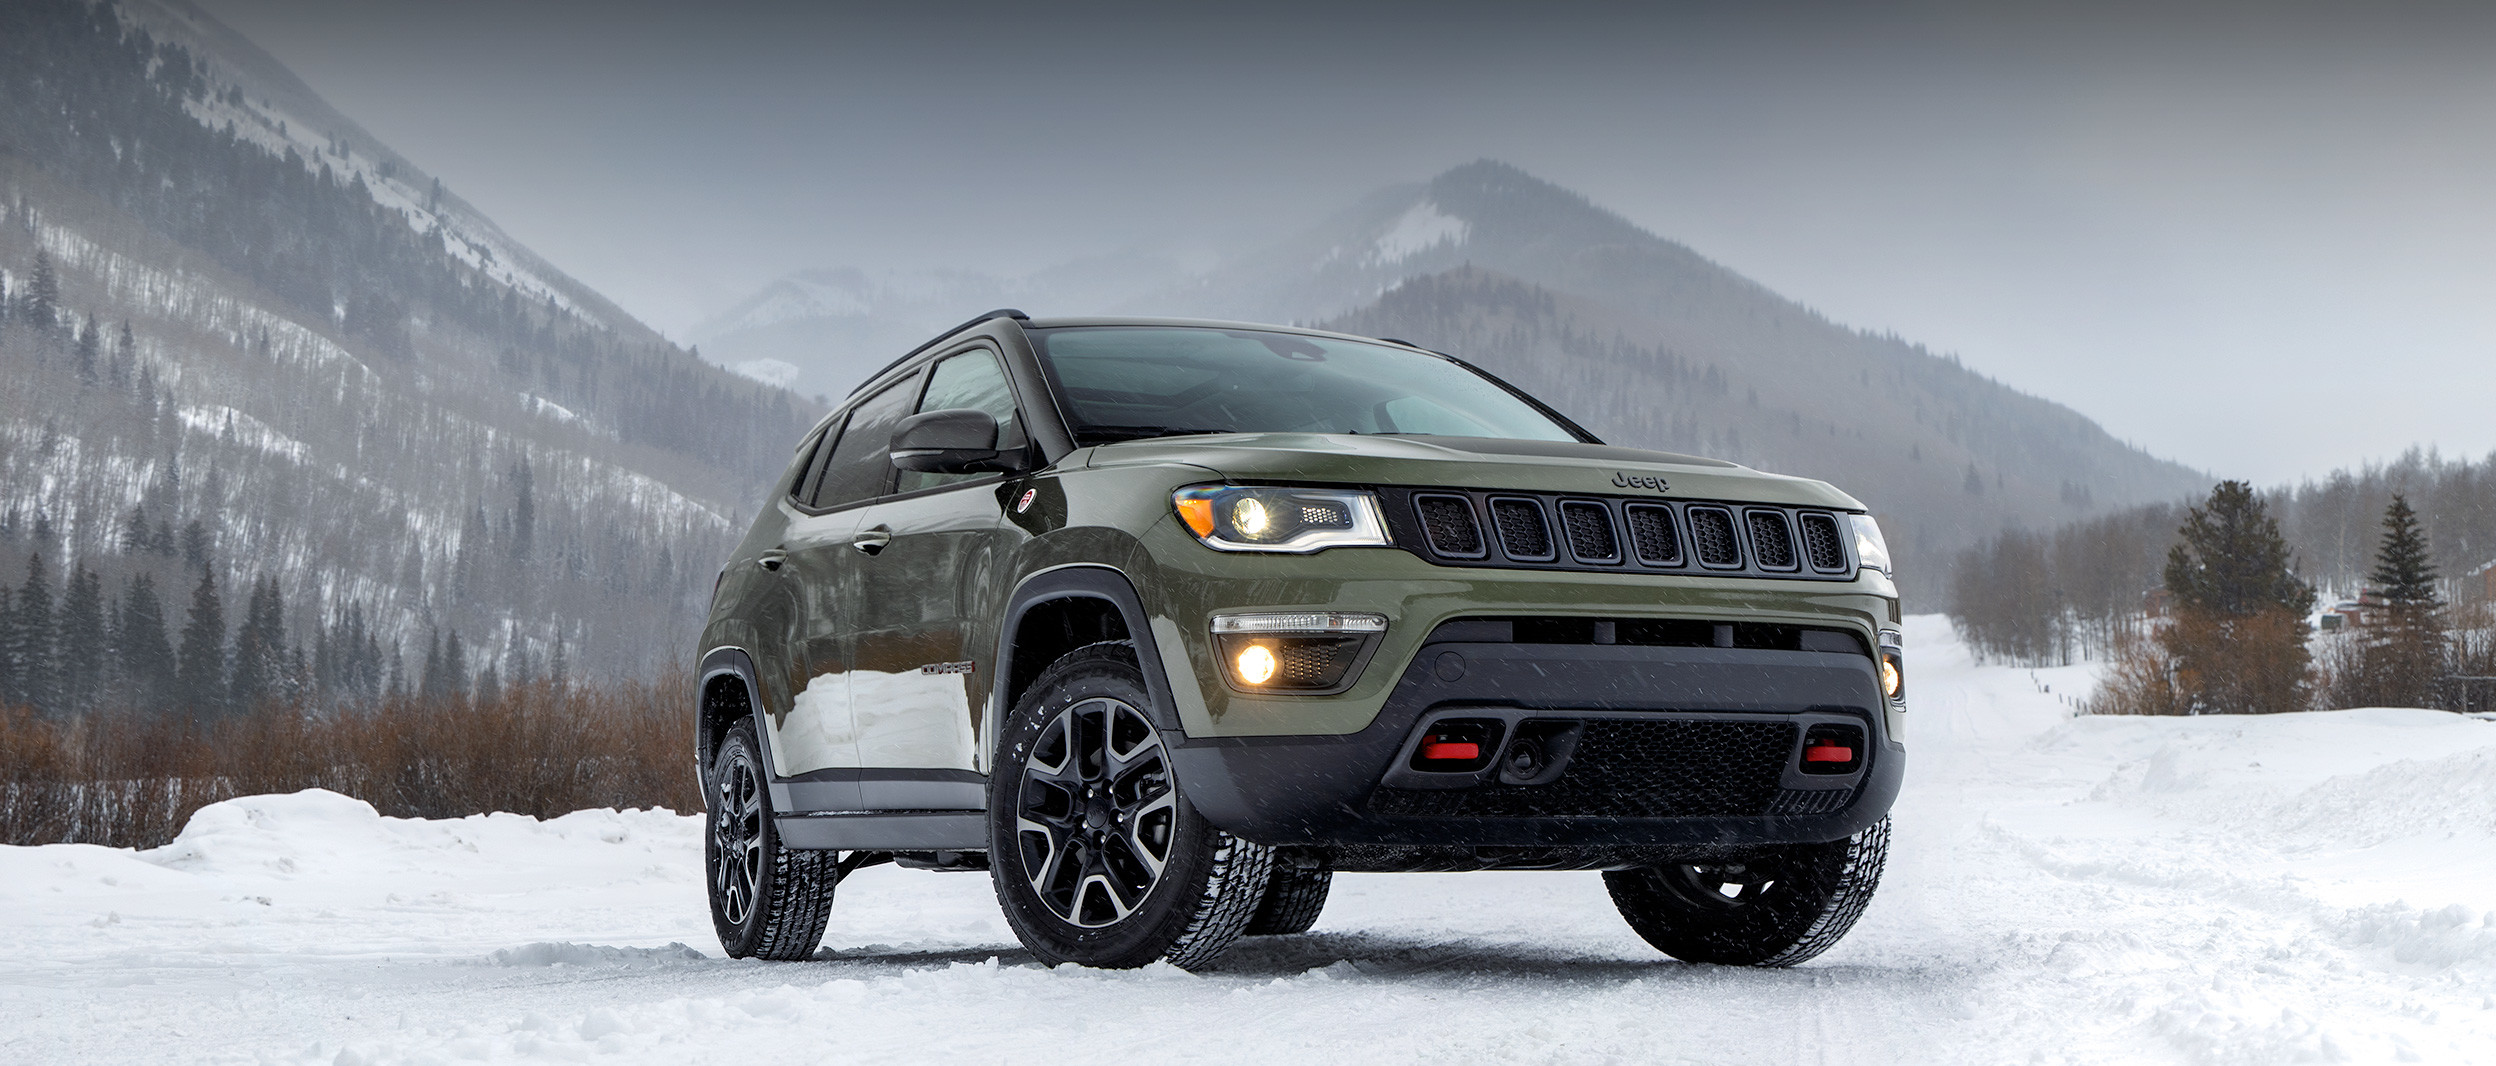 Front view of the 2020 Jeep Compass Trailhawk in green parked on a snow-covered road in front of mountains